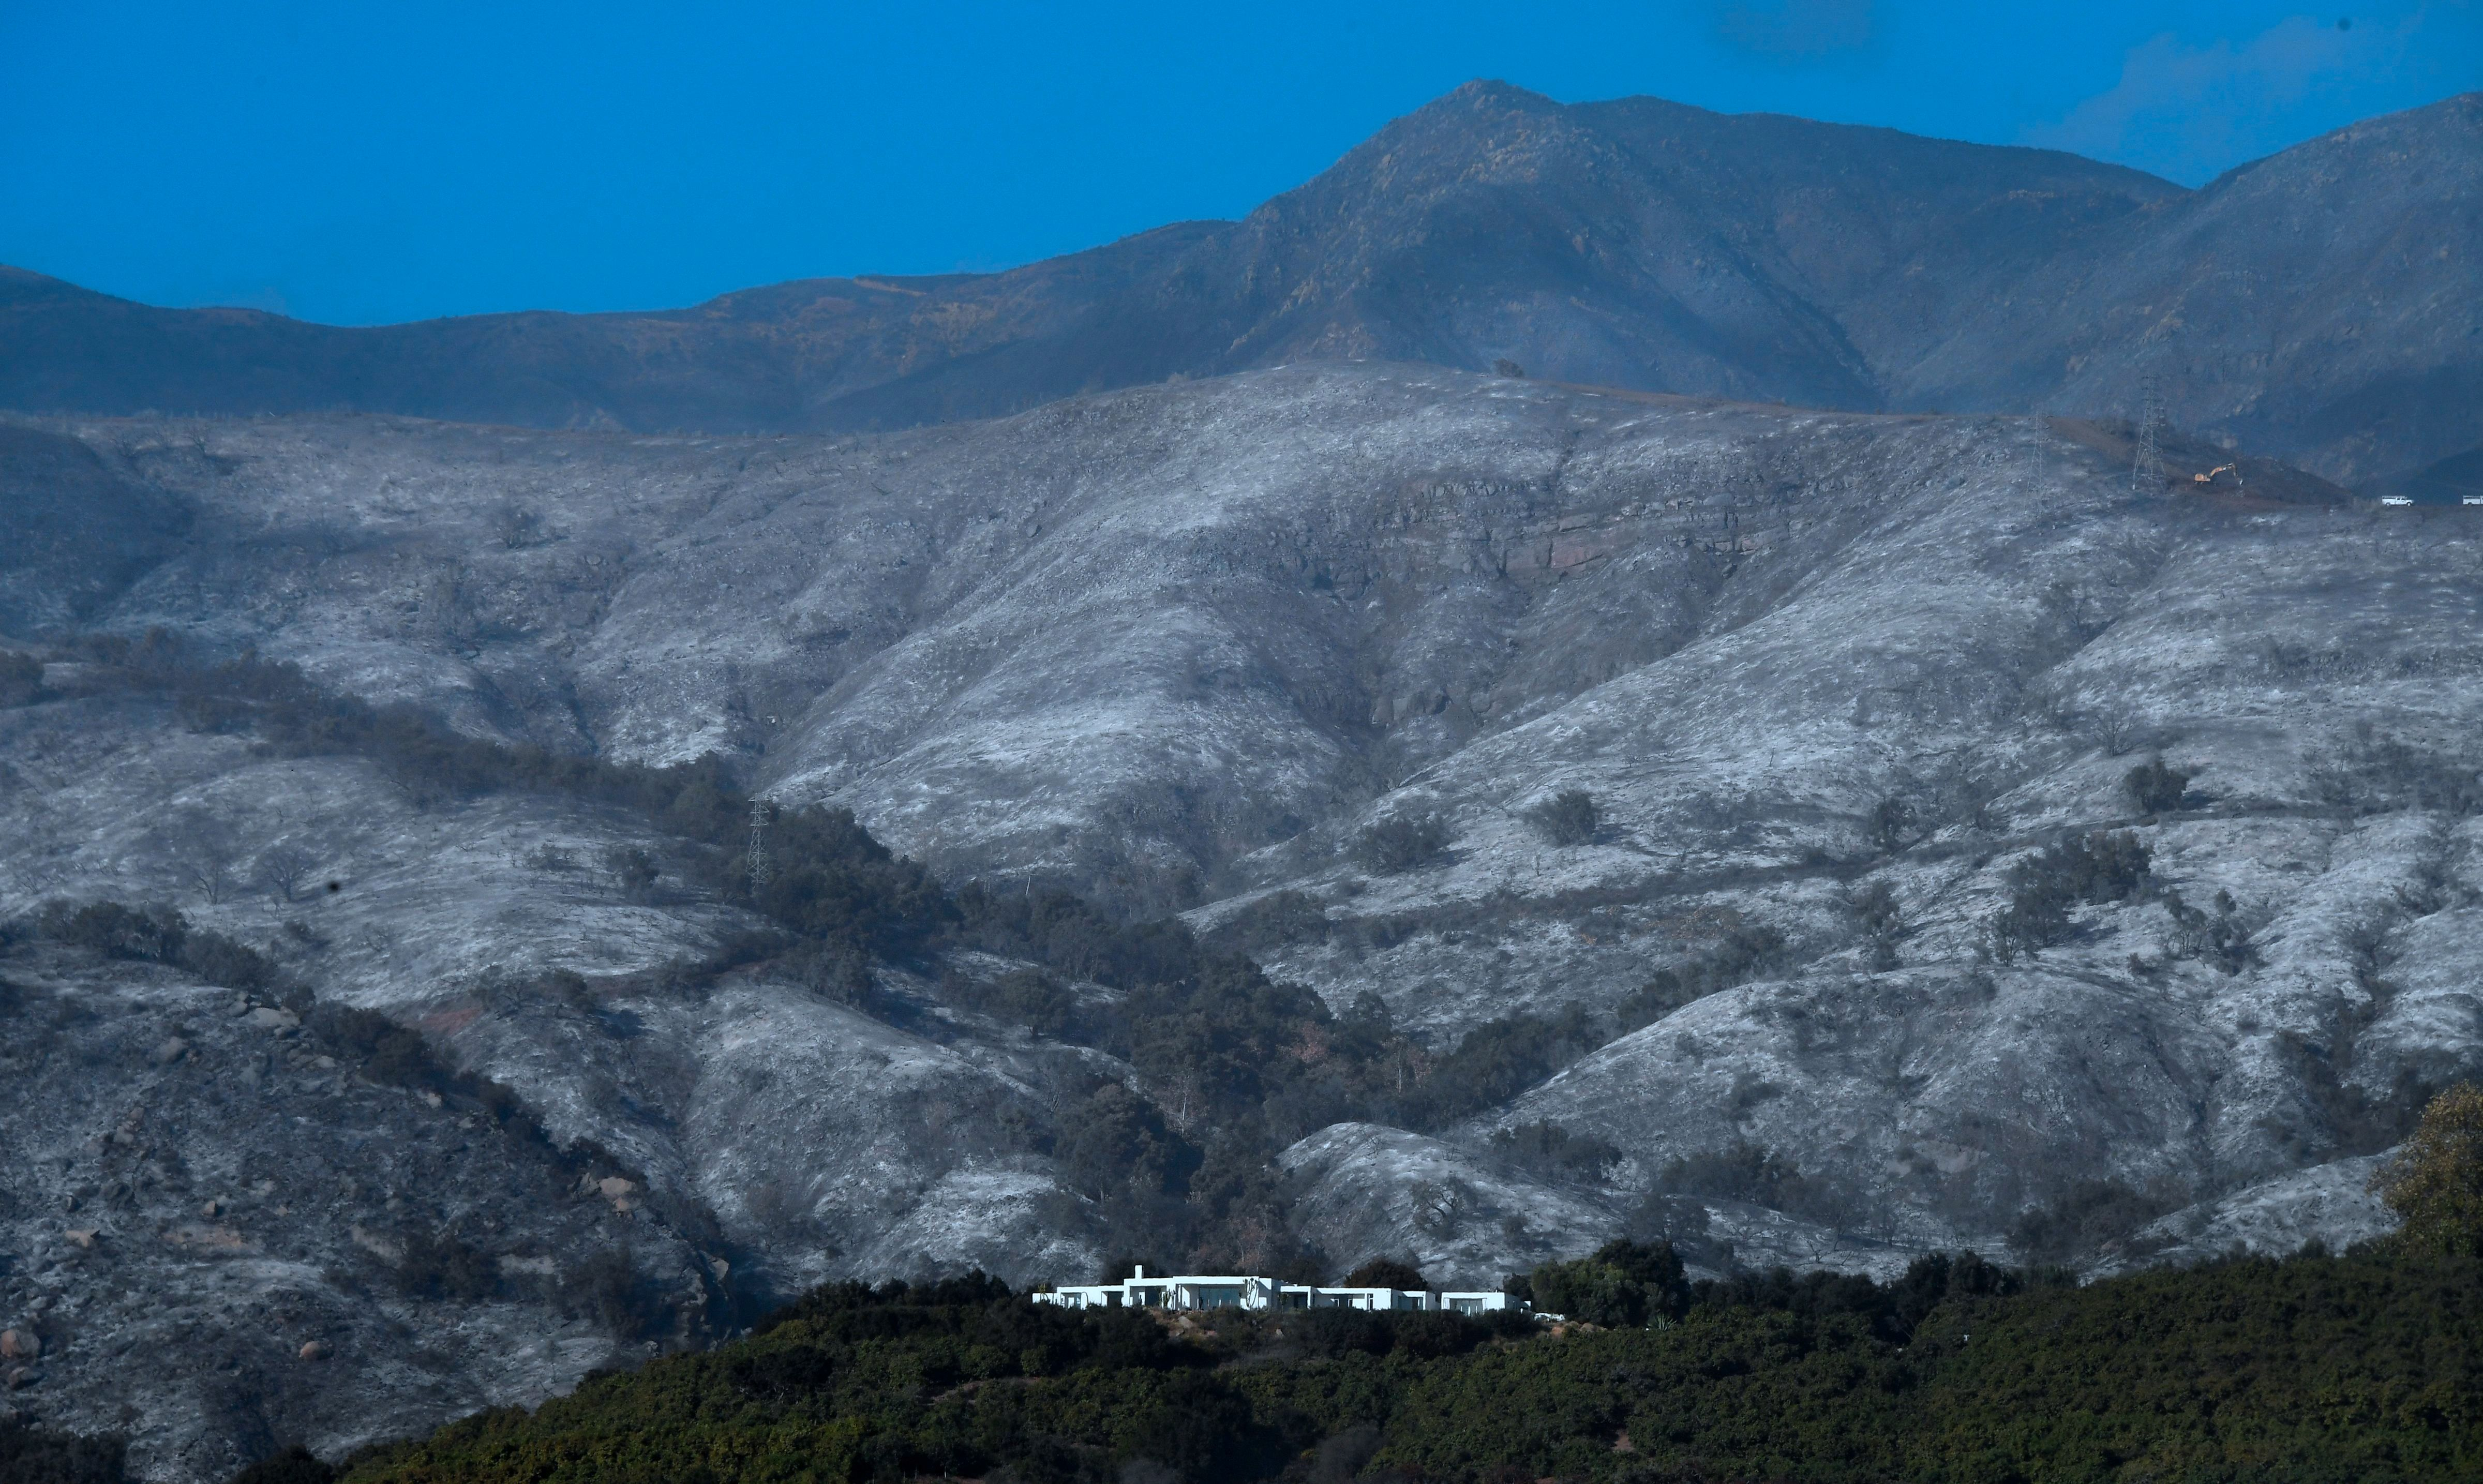 FREDERIC J. BROWN via Getty Images A house remains standing in front of an ash-filled hillside in Montecito California on Dec. 20